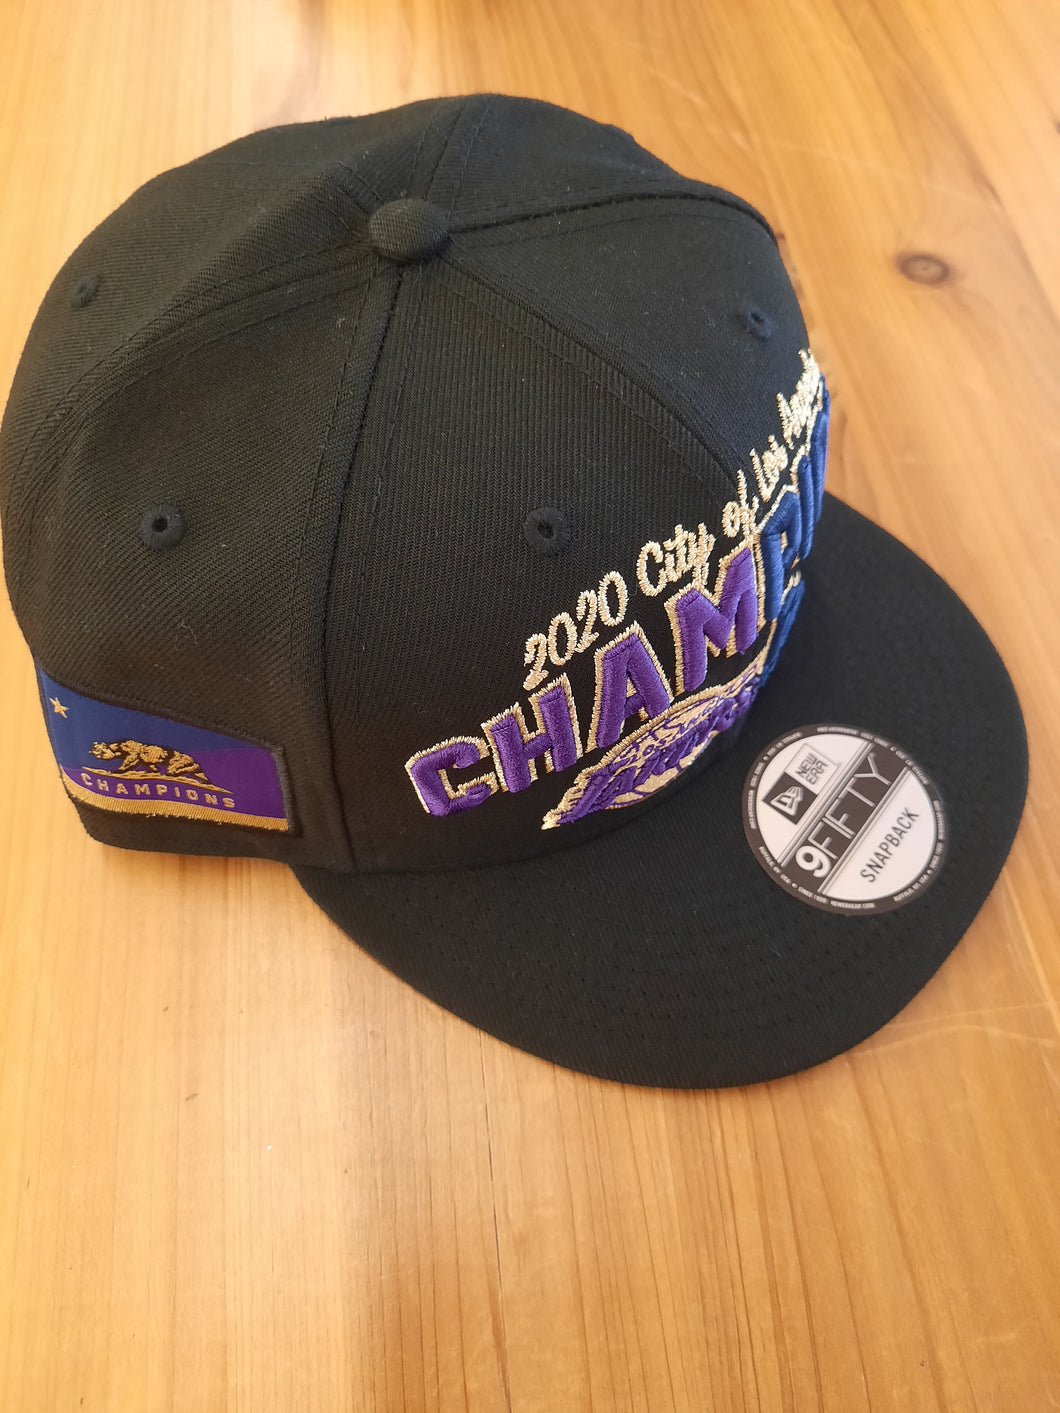 Los Angeles Lakers & Dodgers 2020 New Era Snapback